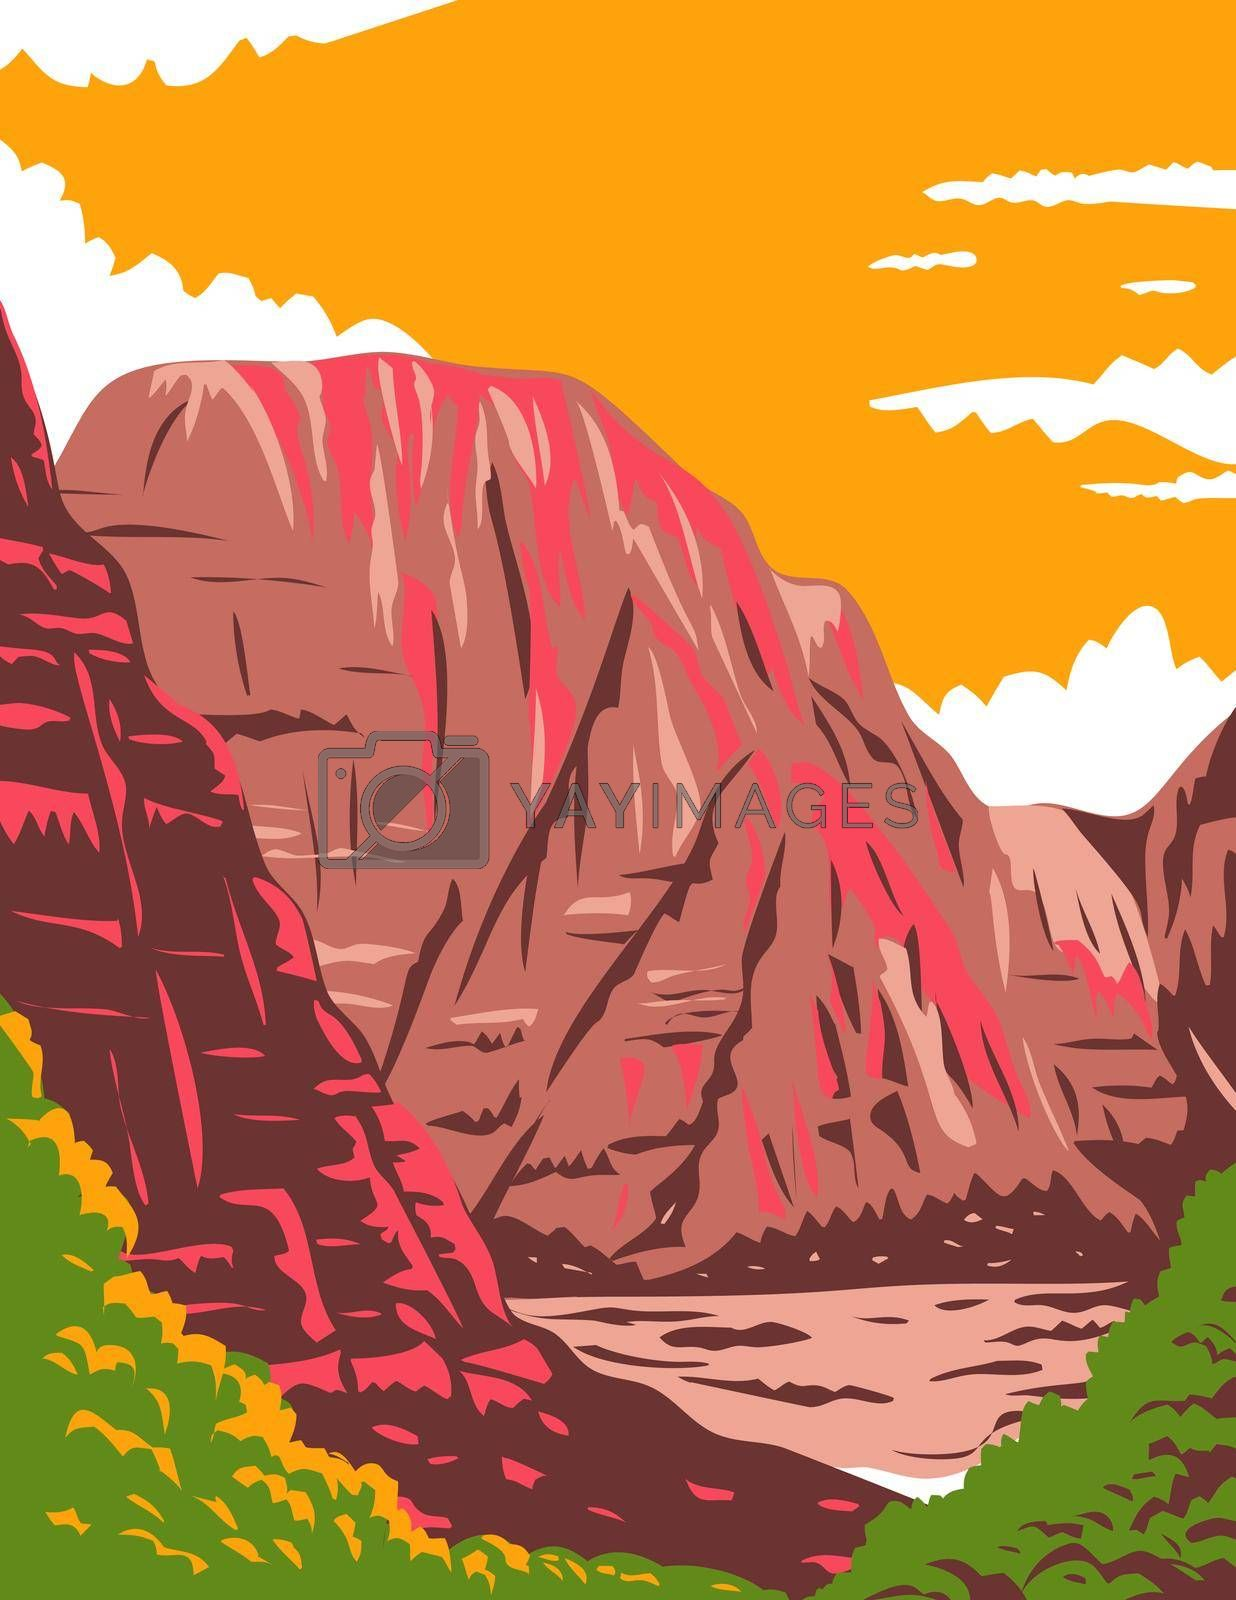 WPA poster art of Zion National Park, a southwest Utah nature preserve distinguished by Zion Canyon's steep red cliffs in United States in works project administration or federal art project style.